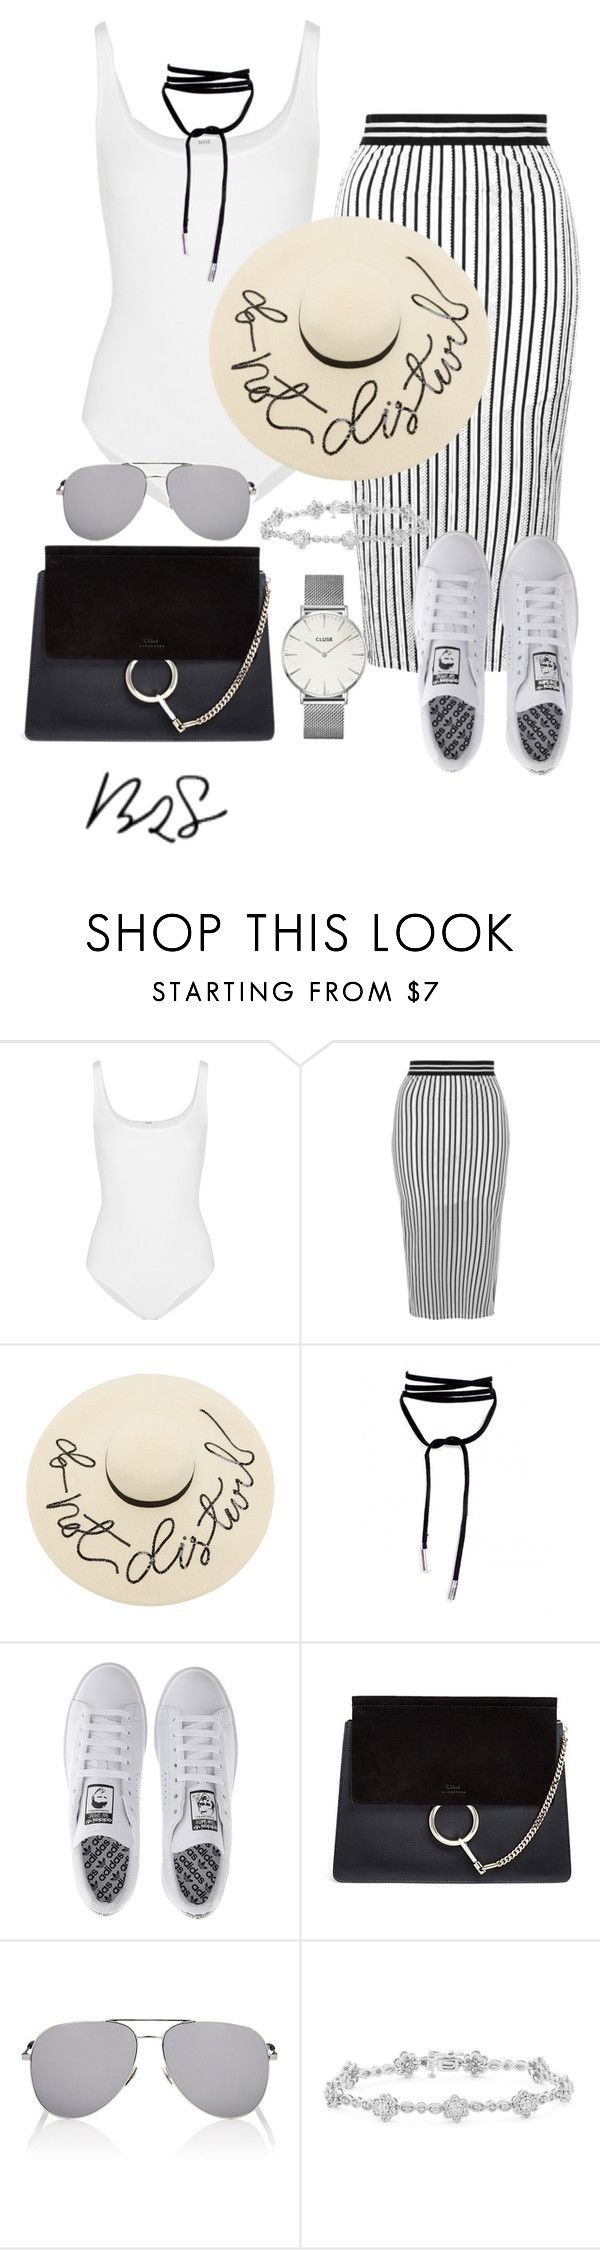 """#741"" by blendingtwostyles ❤ liked on Polyvore featuring Wolford, Topshop, Eugenia Kim, adidas, Chloé, Yves Saint Laurent and CLUSE"